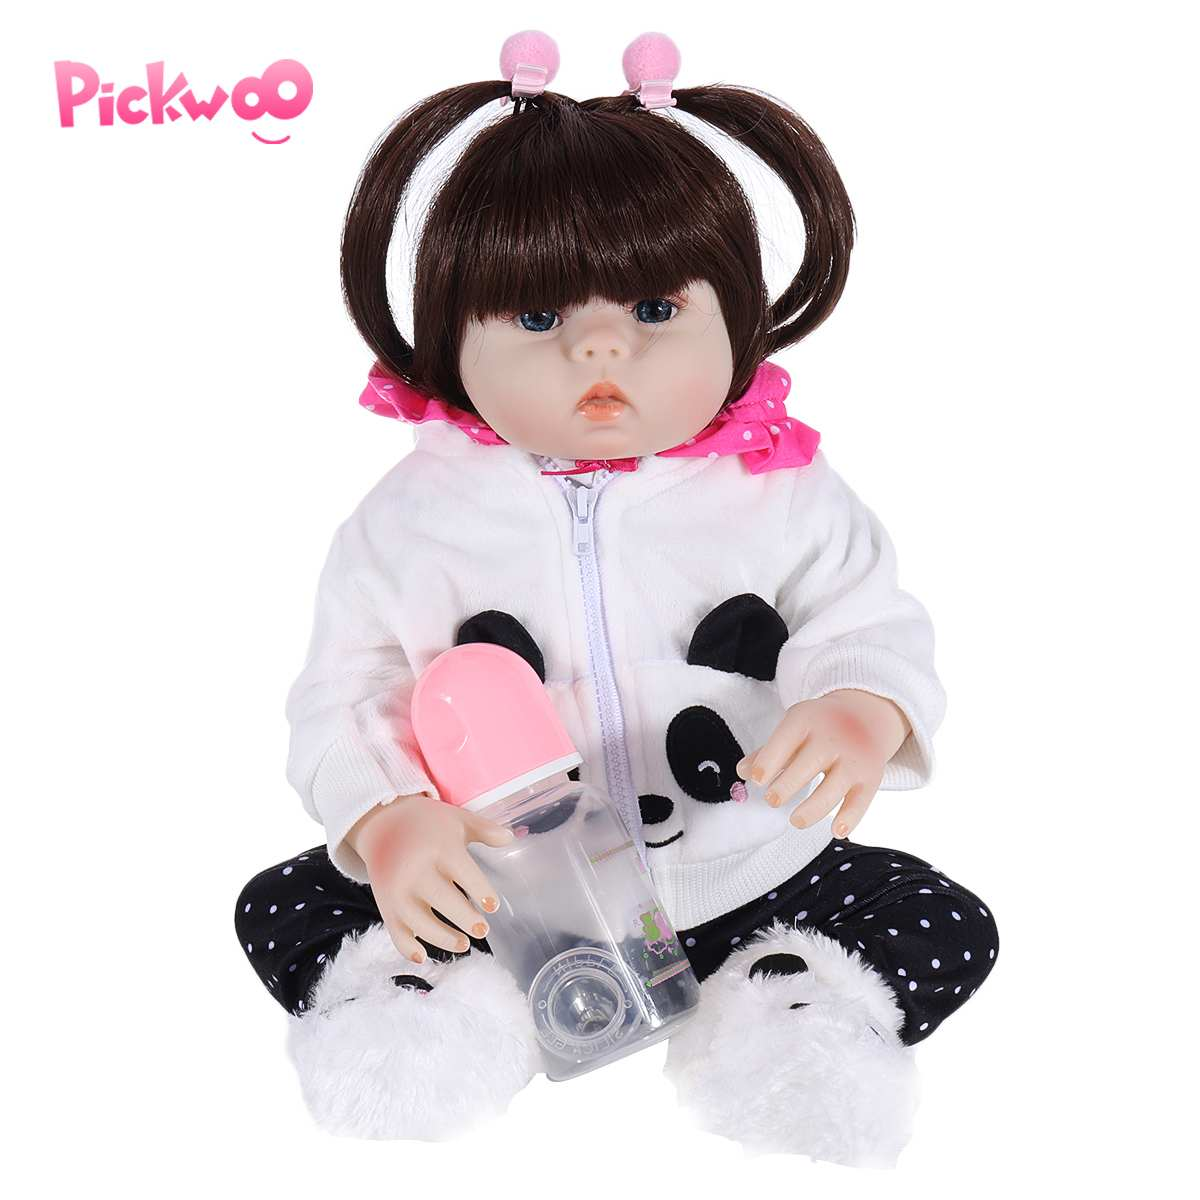 Pickwoo 48CM Bebes Doll Reborn Toddler Doll Girl In Panda Dress Full Body Soft Silicone Realistic Baby Bath Toy Anatomically